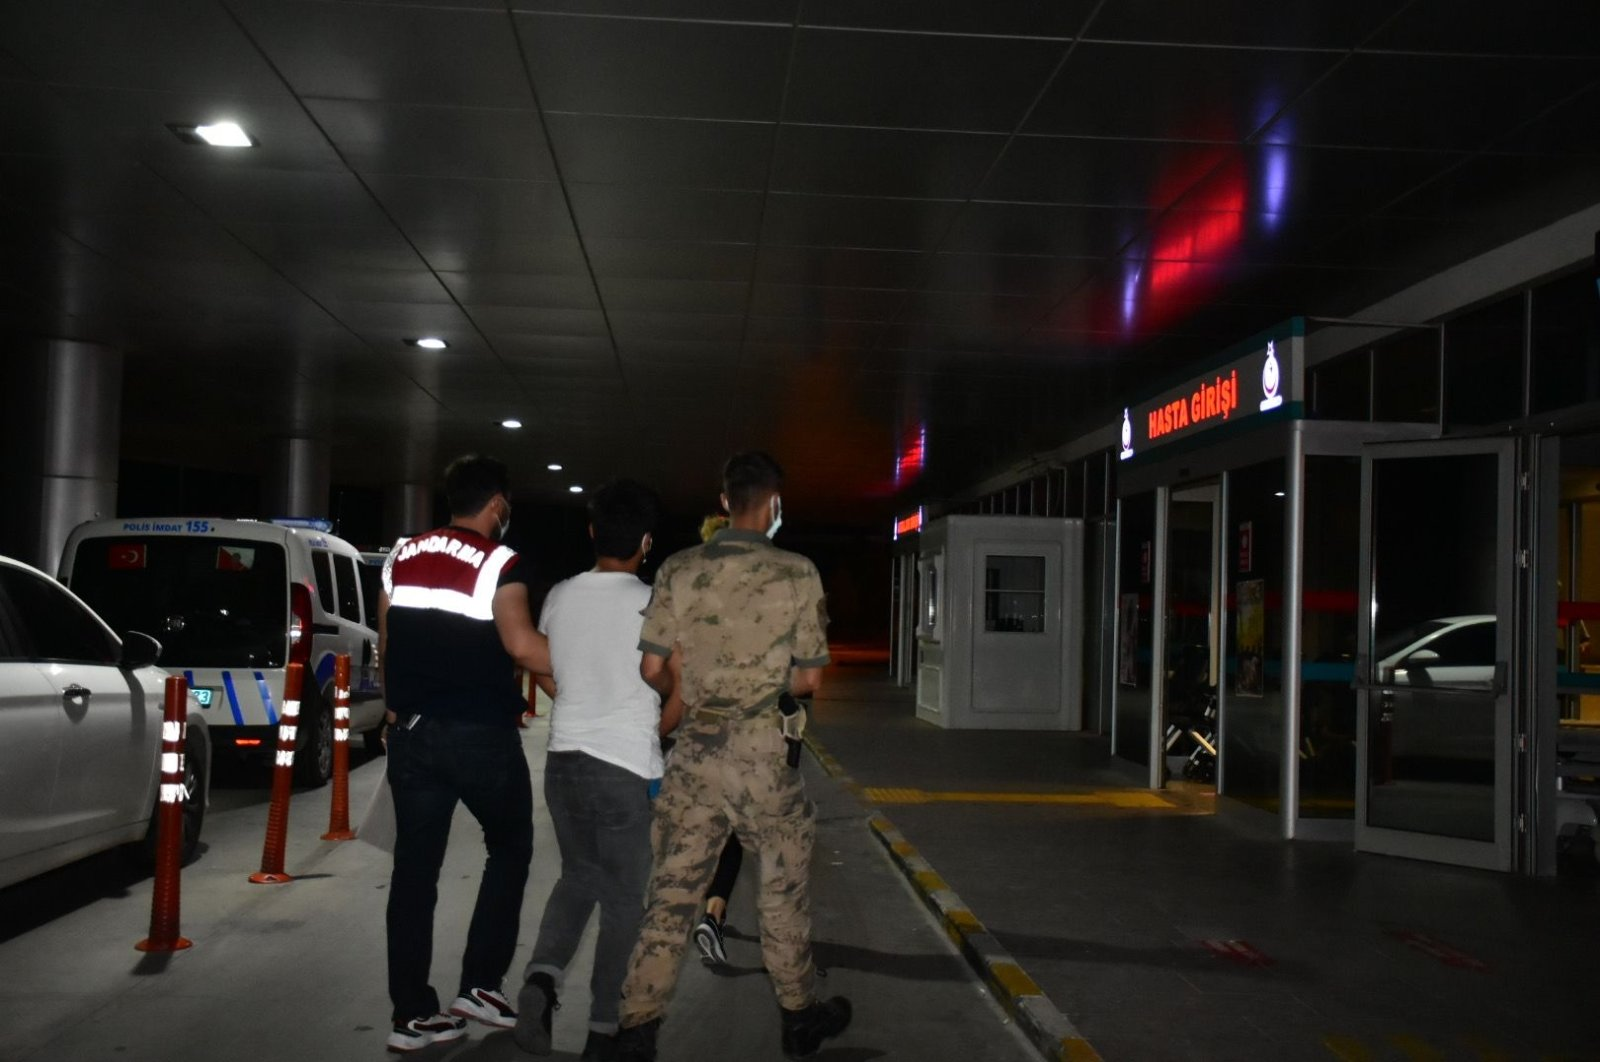 Gendarmerie officers escort a suspect to the hospital for medical checks, in Izmir, western Turkey, July 12, 2021. (DHA PHOTO)